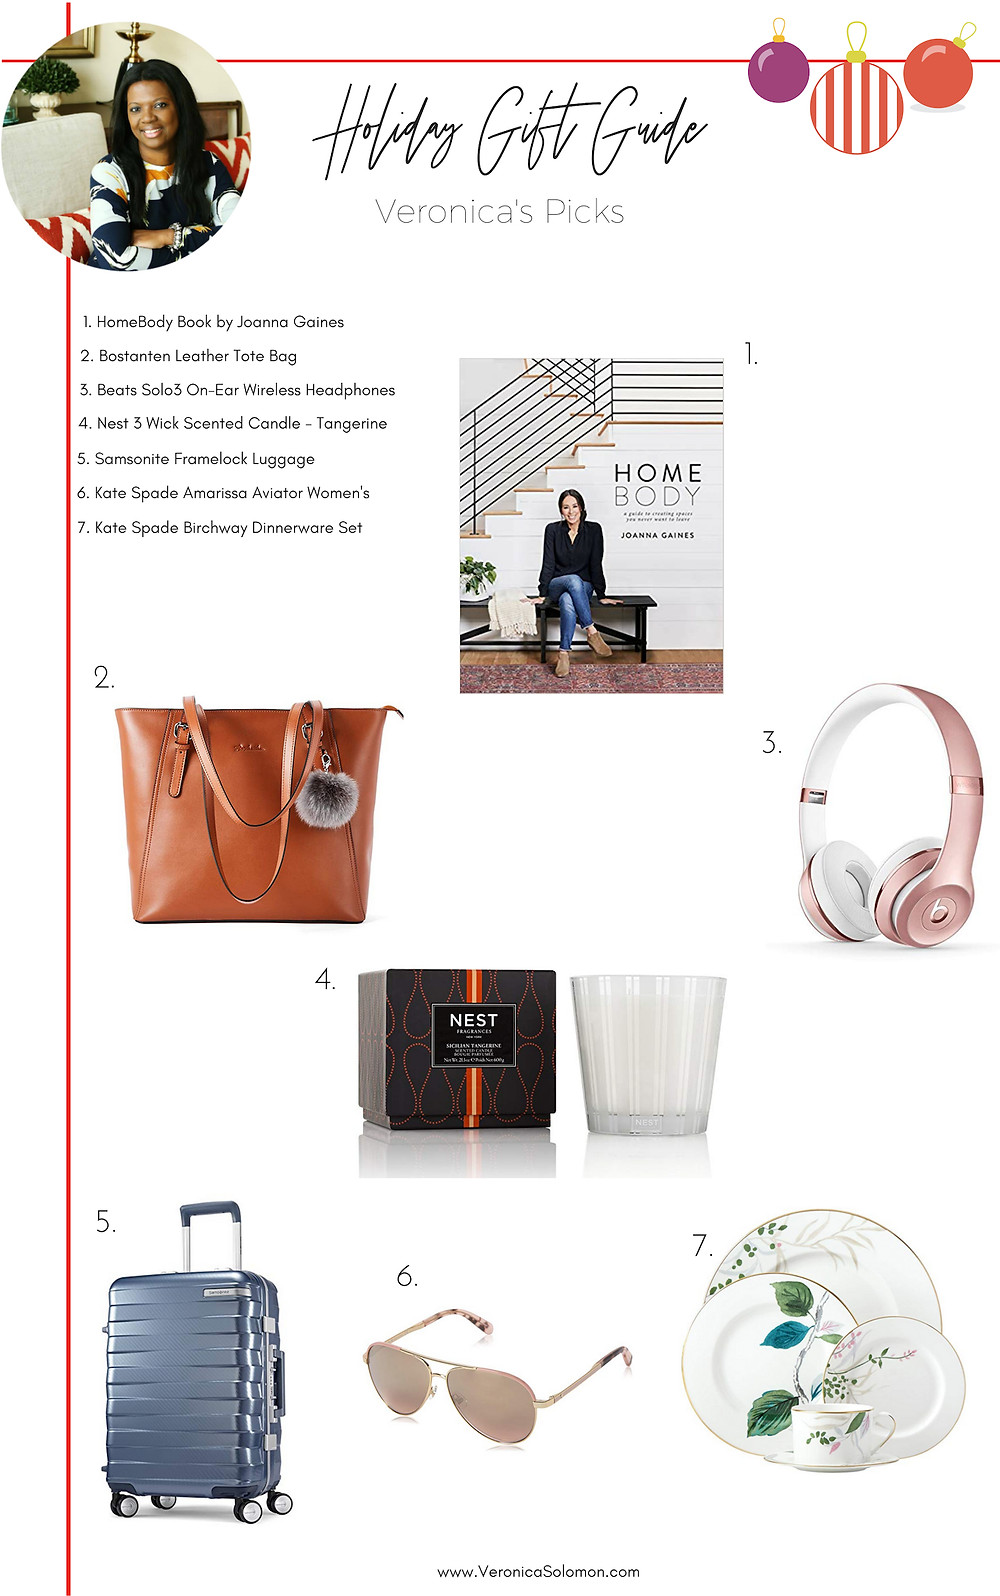 Veronica Solomon Holiday Gift Guide